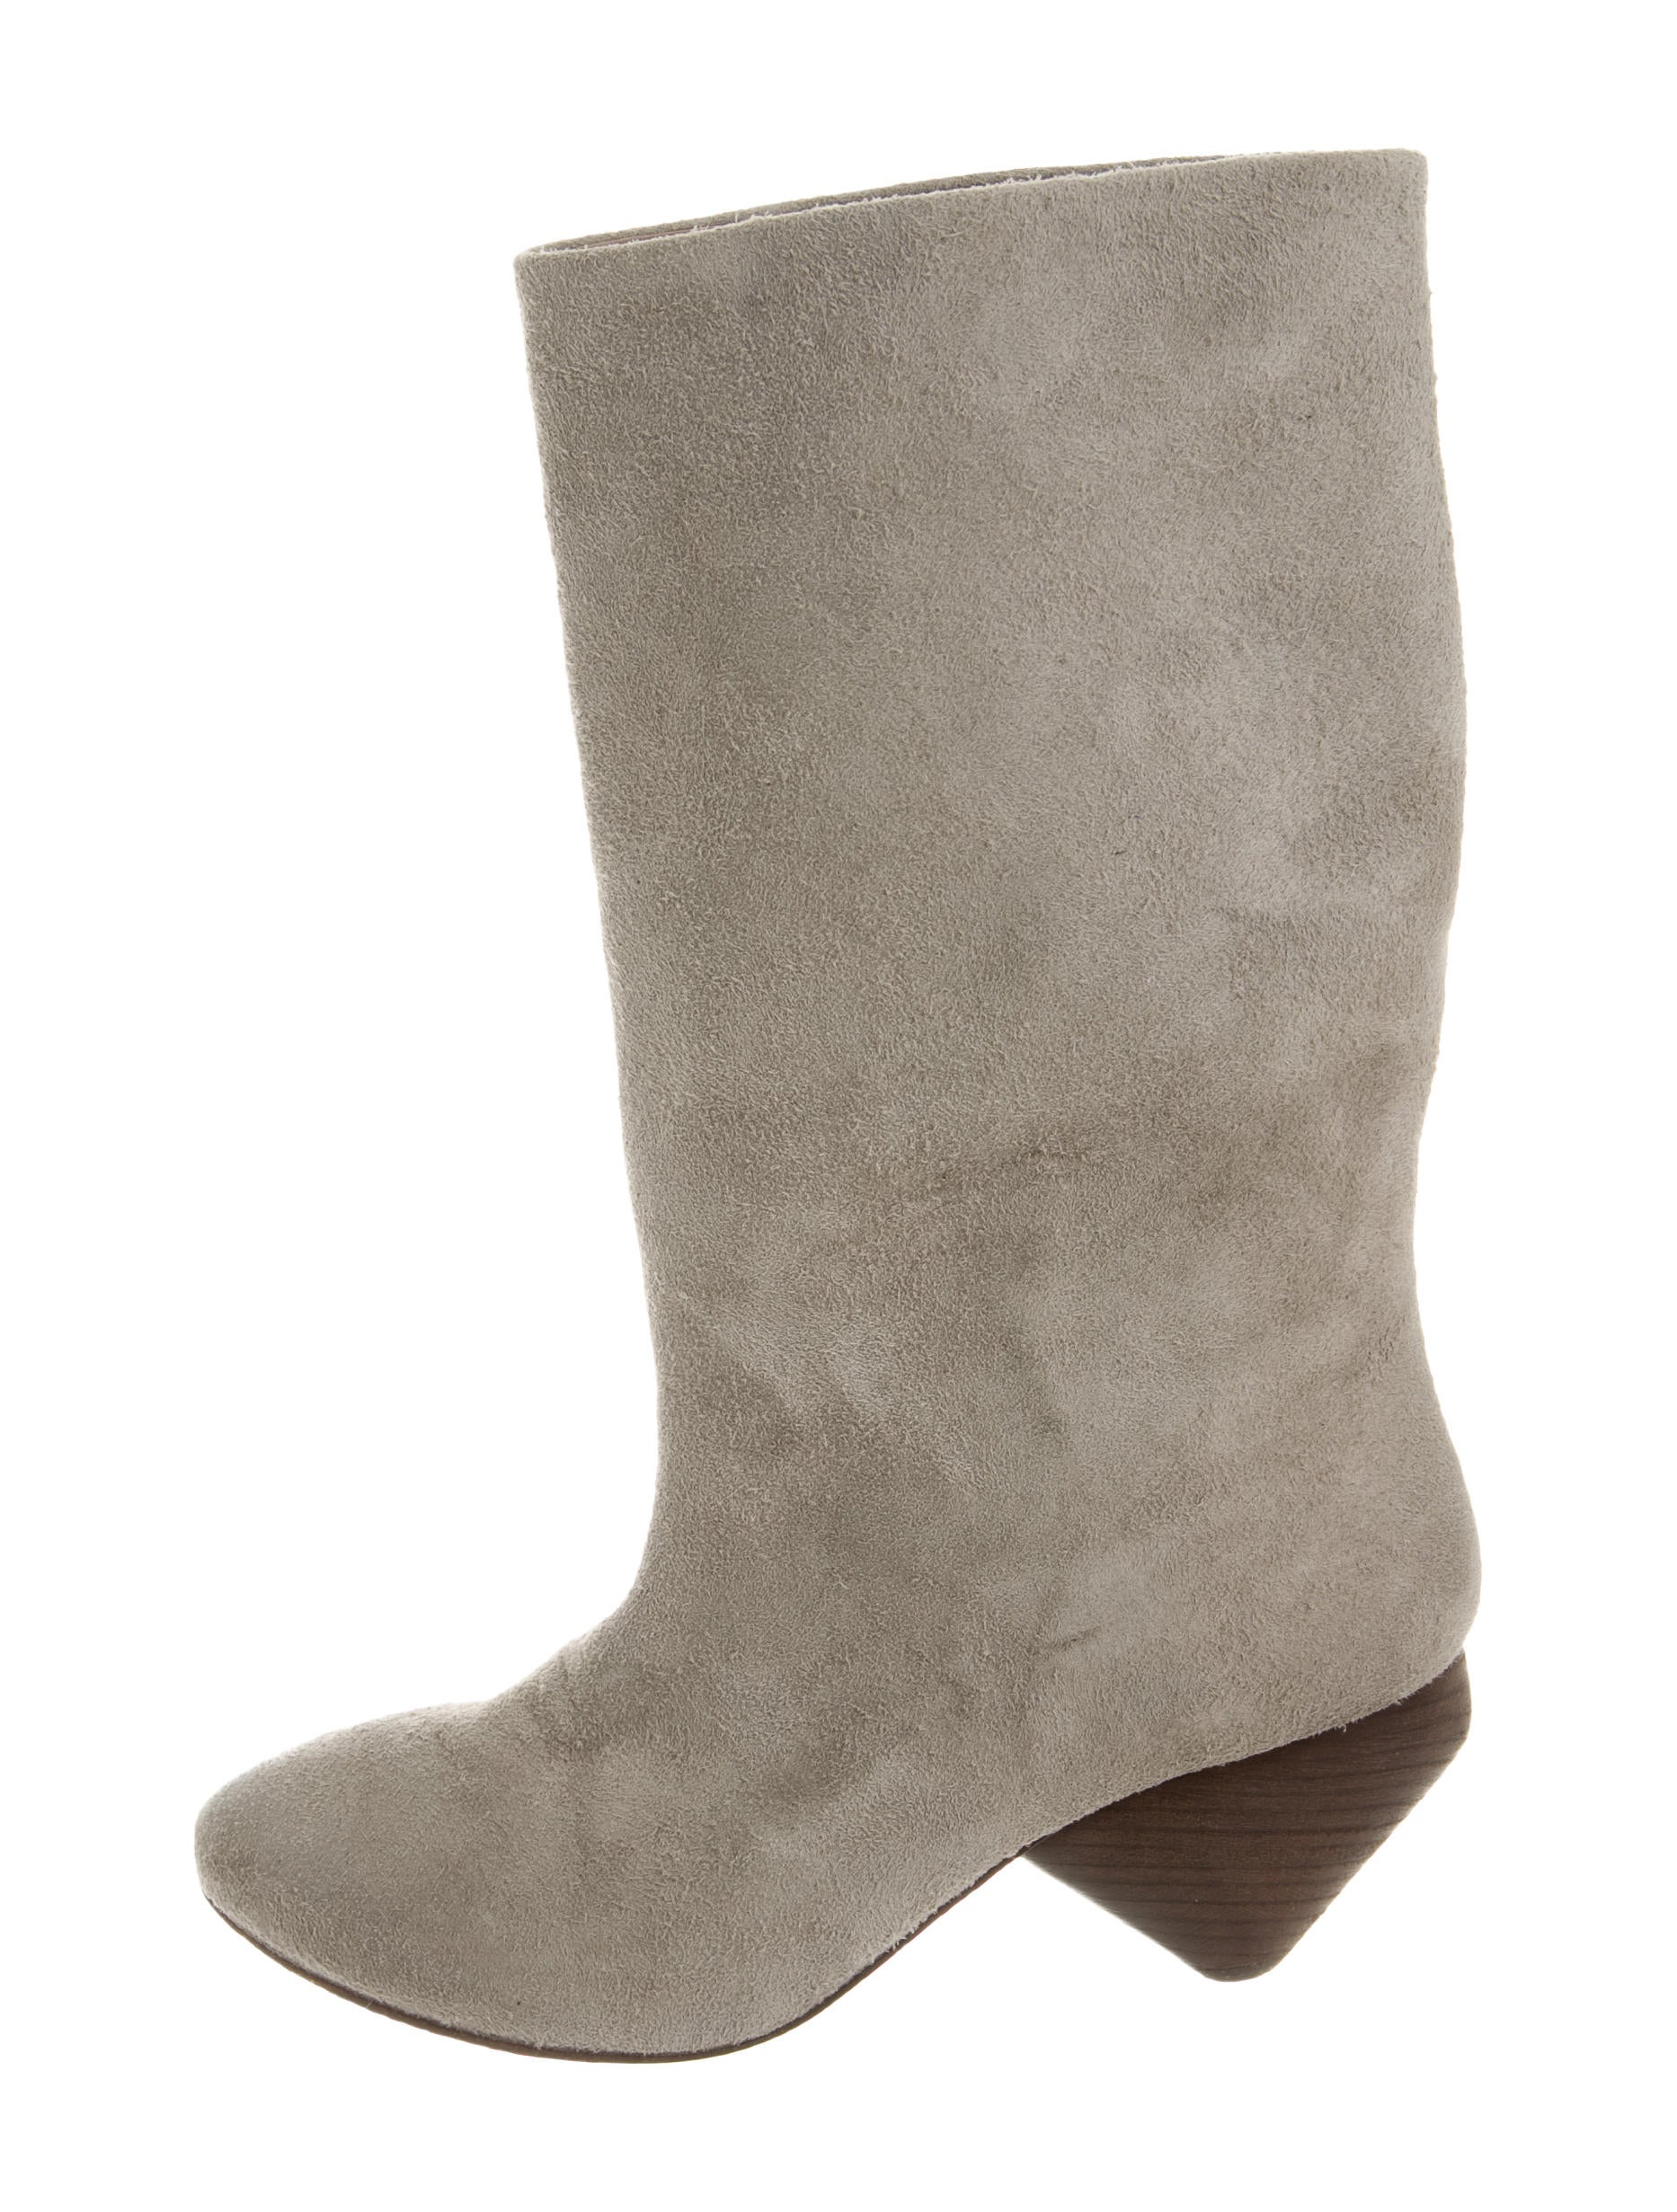 mars 232 ll suede mid calf boots shoes mrc20769 the realreal